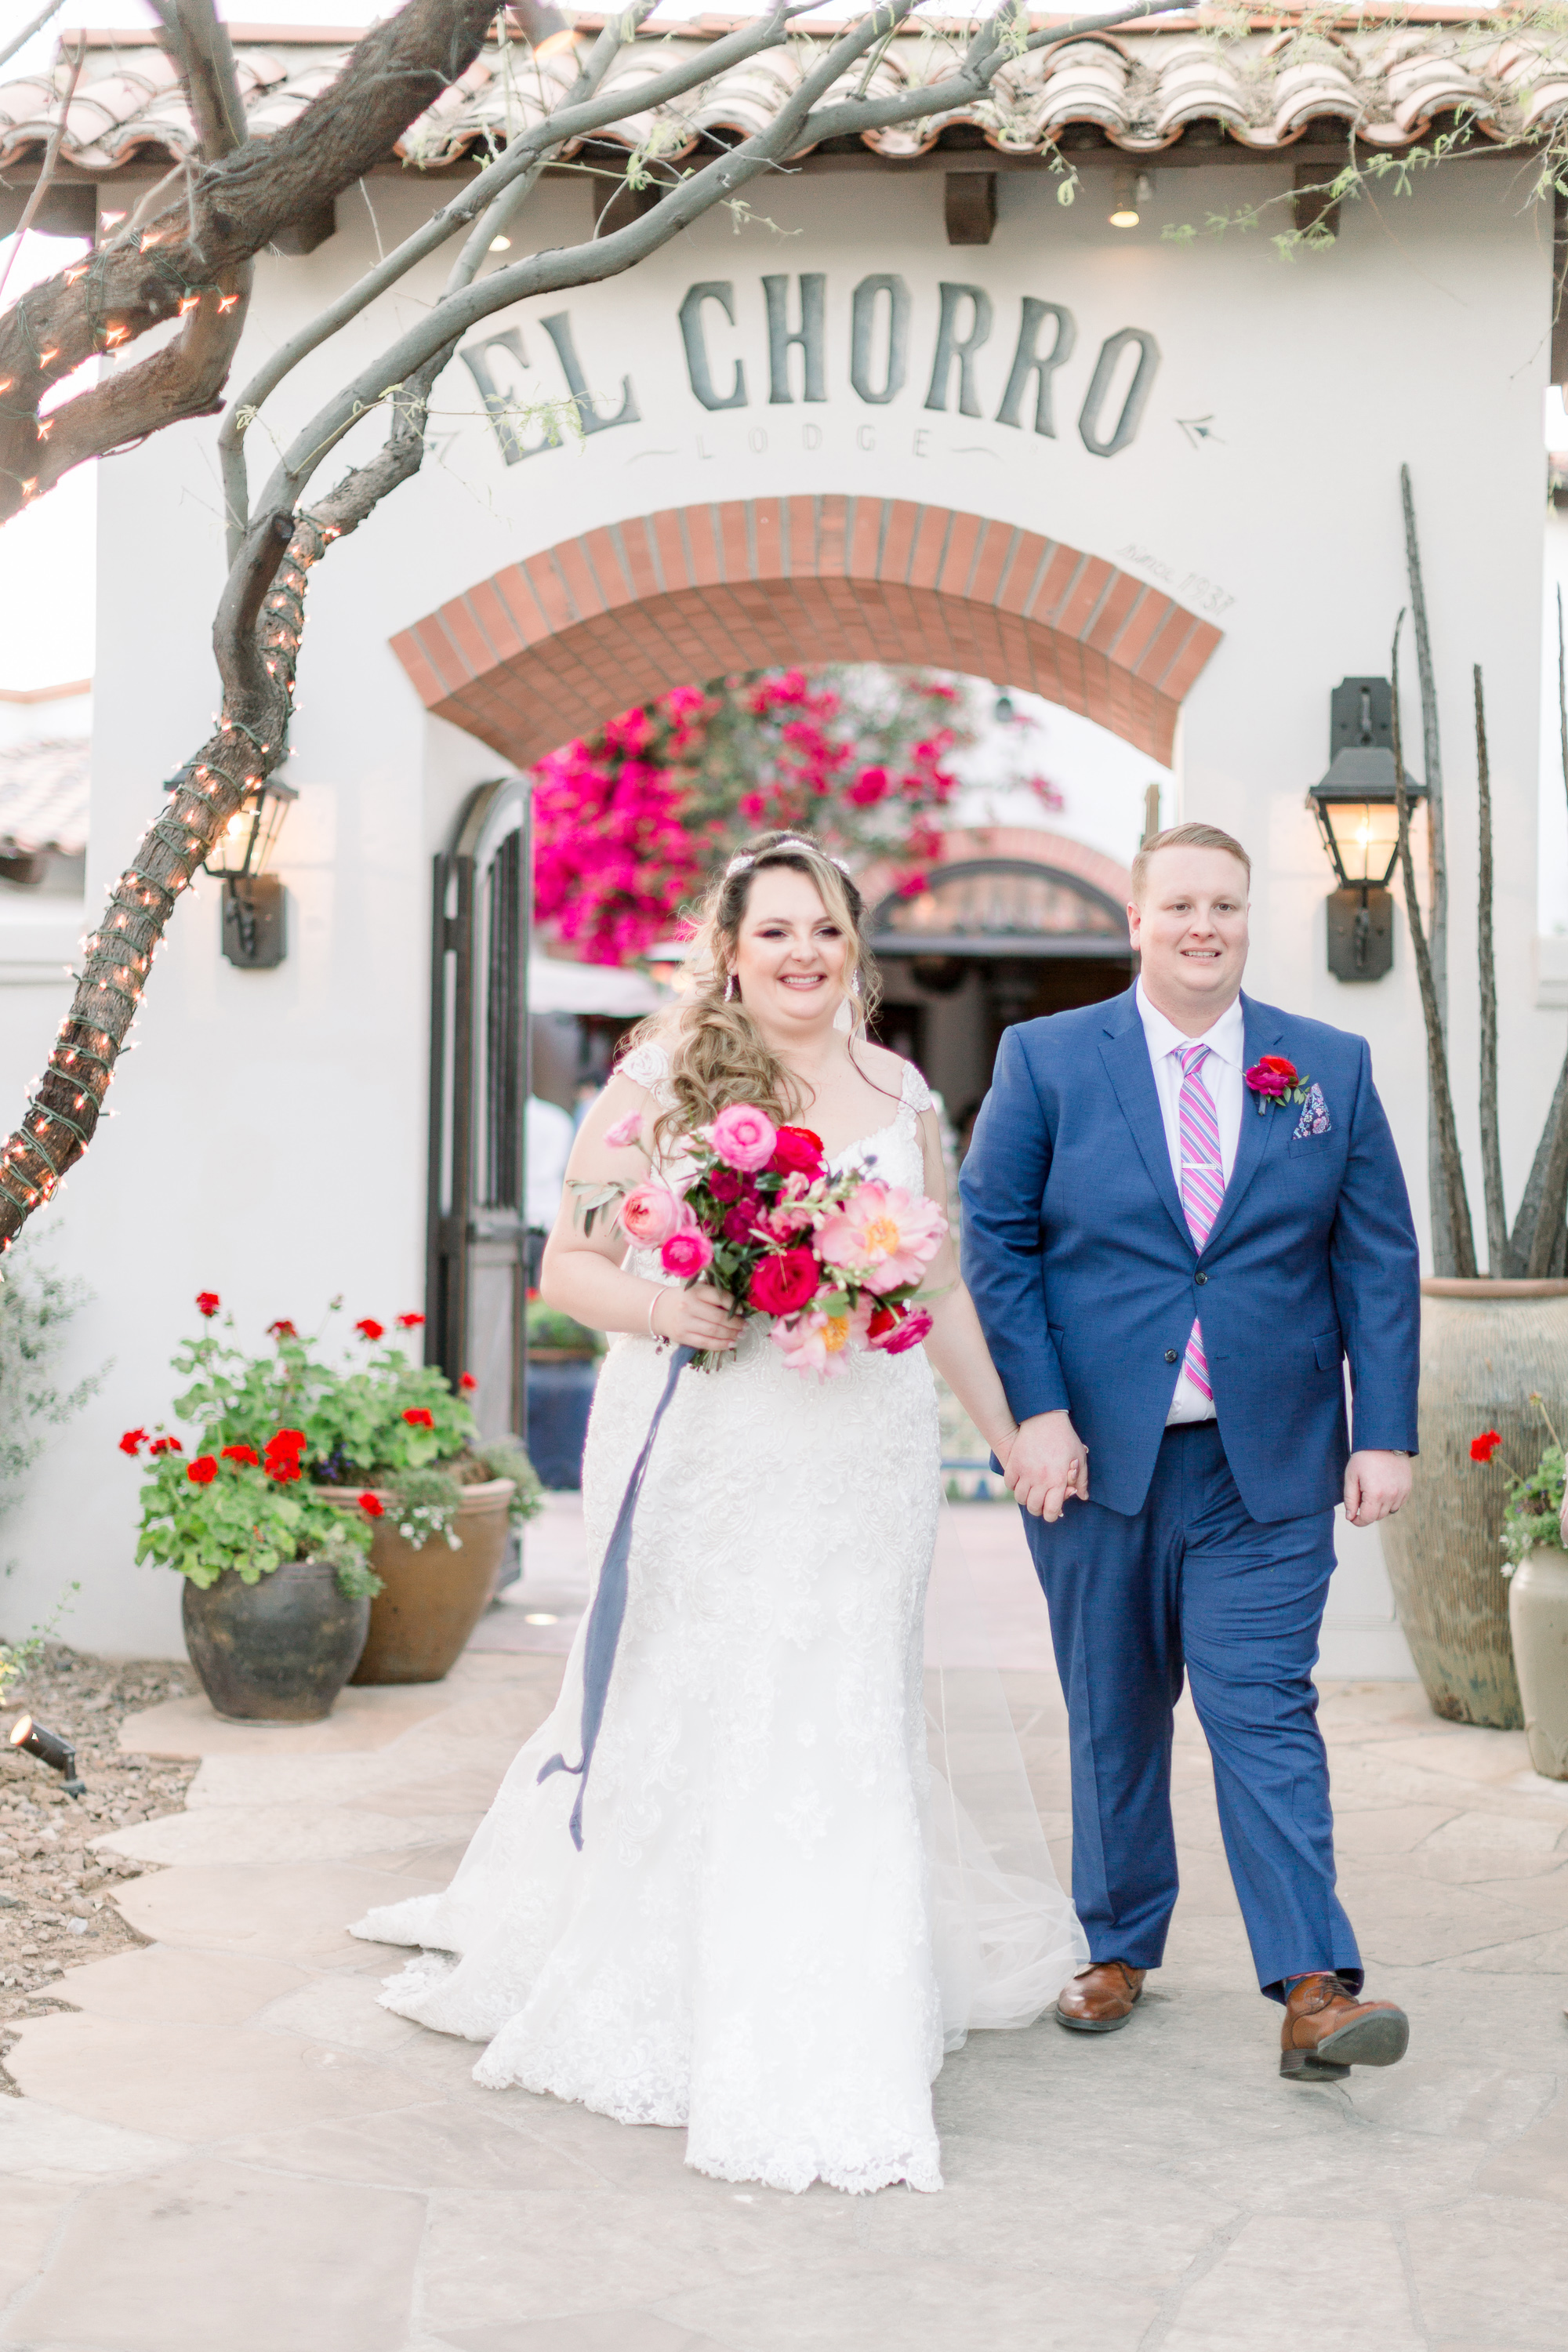 Roxanne and Brandon's El Chorro Wedding - Arizona florist Phoenix scottsdale Mesa chandler Sedona Prescott - Bride and Groom with bright colorful bouquet